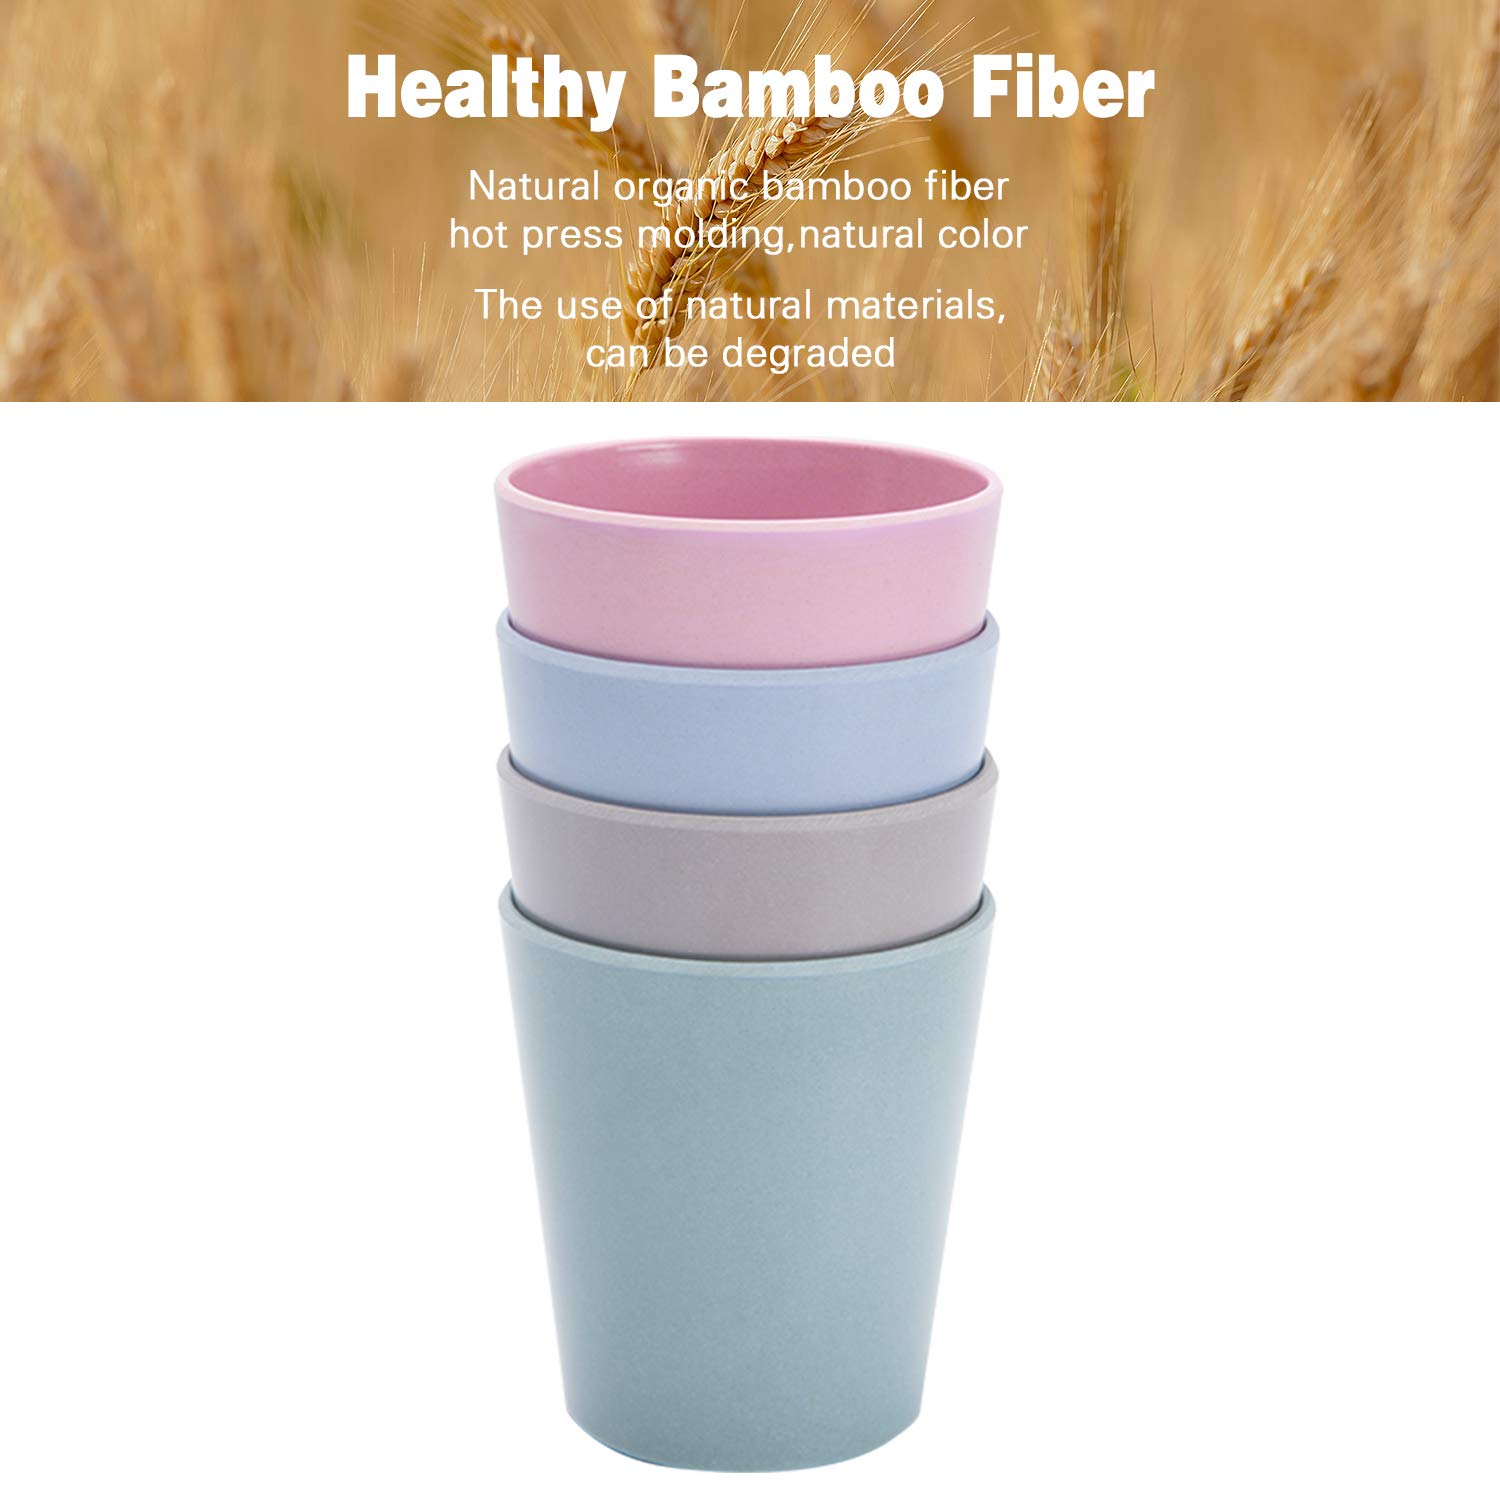 4pcs Bamboo Kids Cups (10 fl oz) for Baby Feeding, Non Toxic & Safe Toddler Cups for Drinking, Eco-Friendly Tableware for Baby Toddler Kids Bamboo Kids Dinnerware Sets by HM-tech